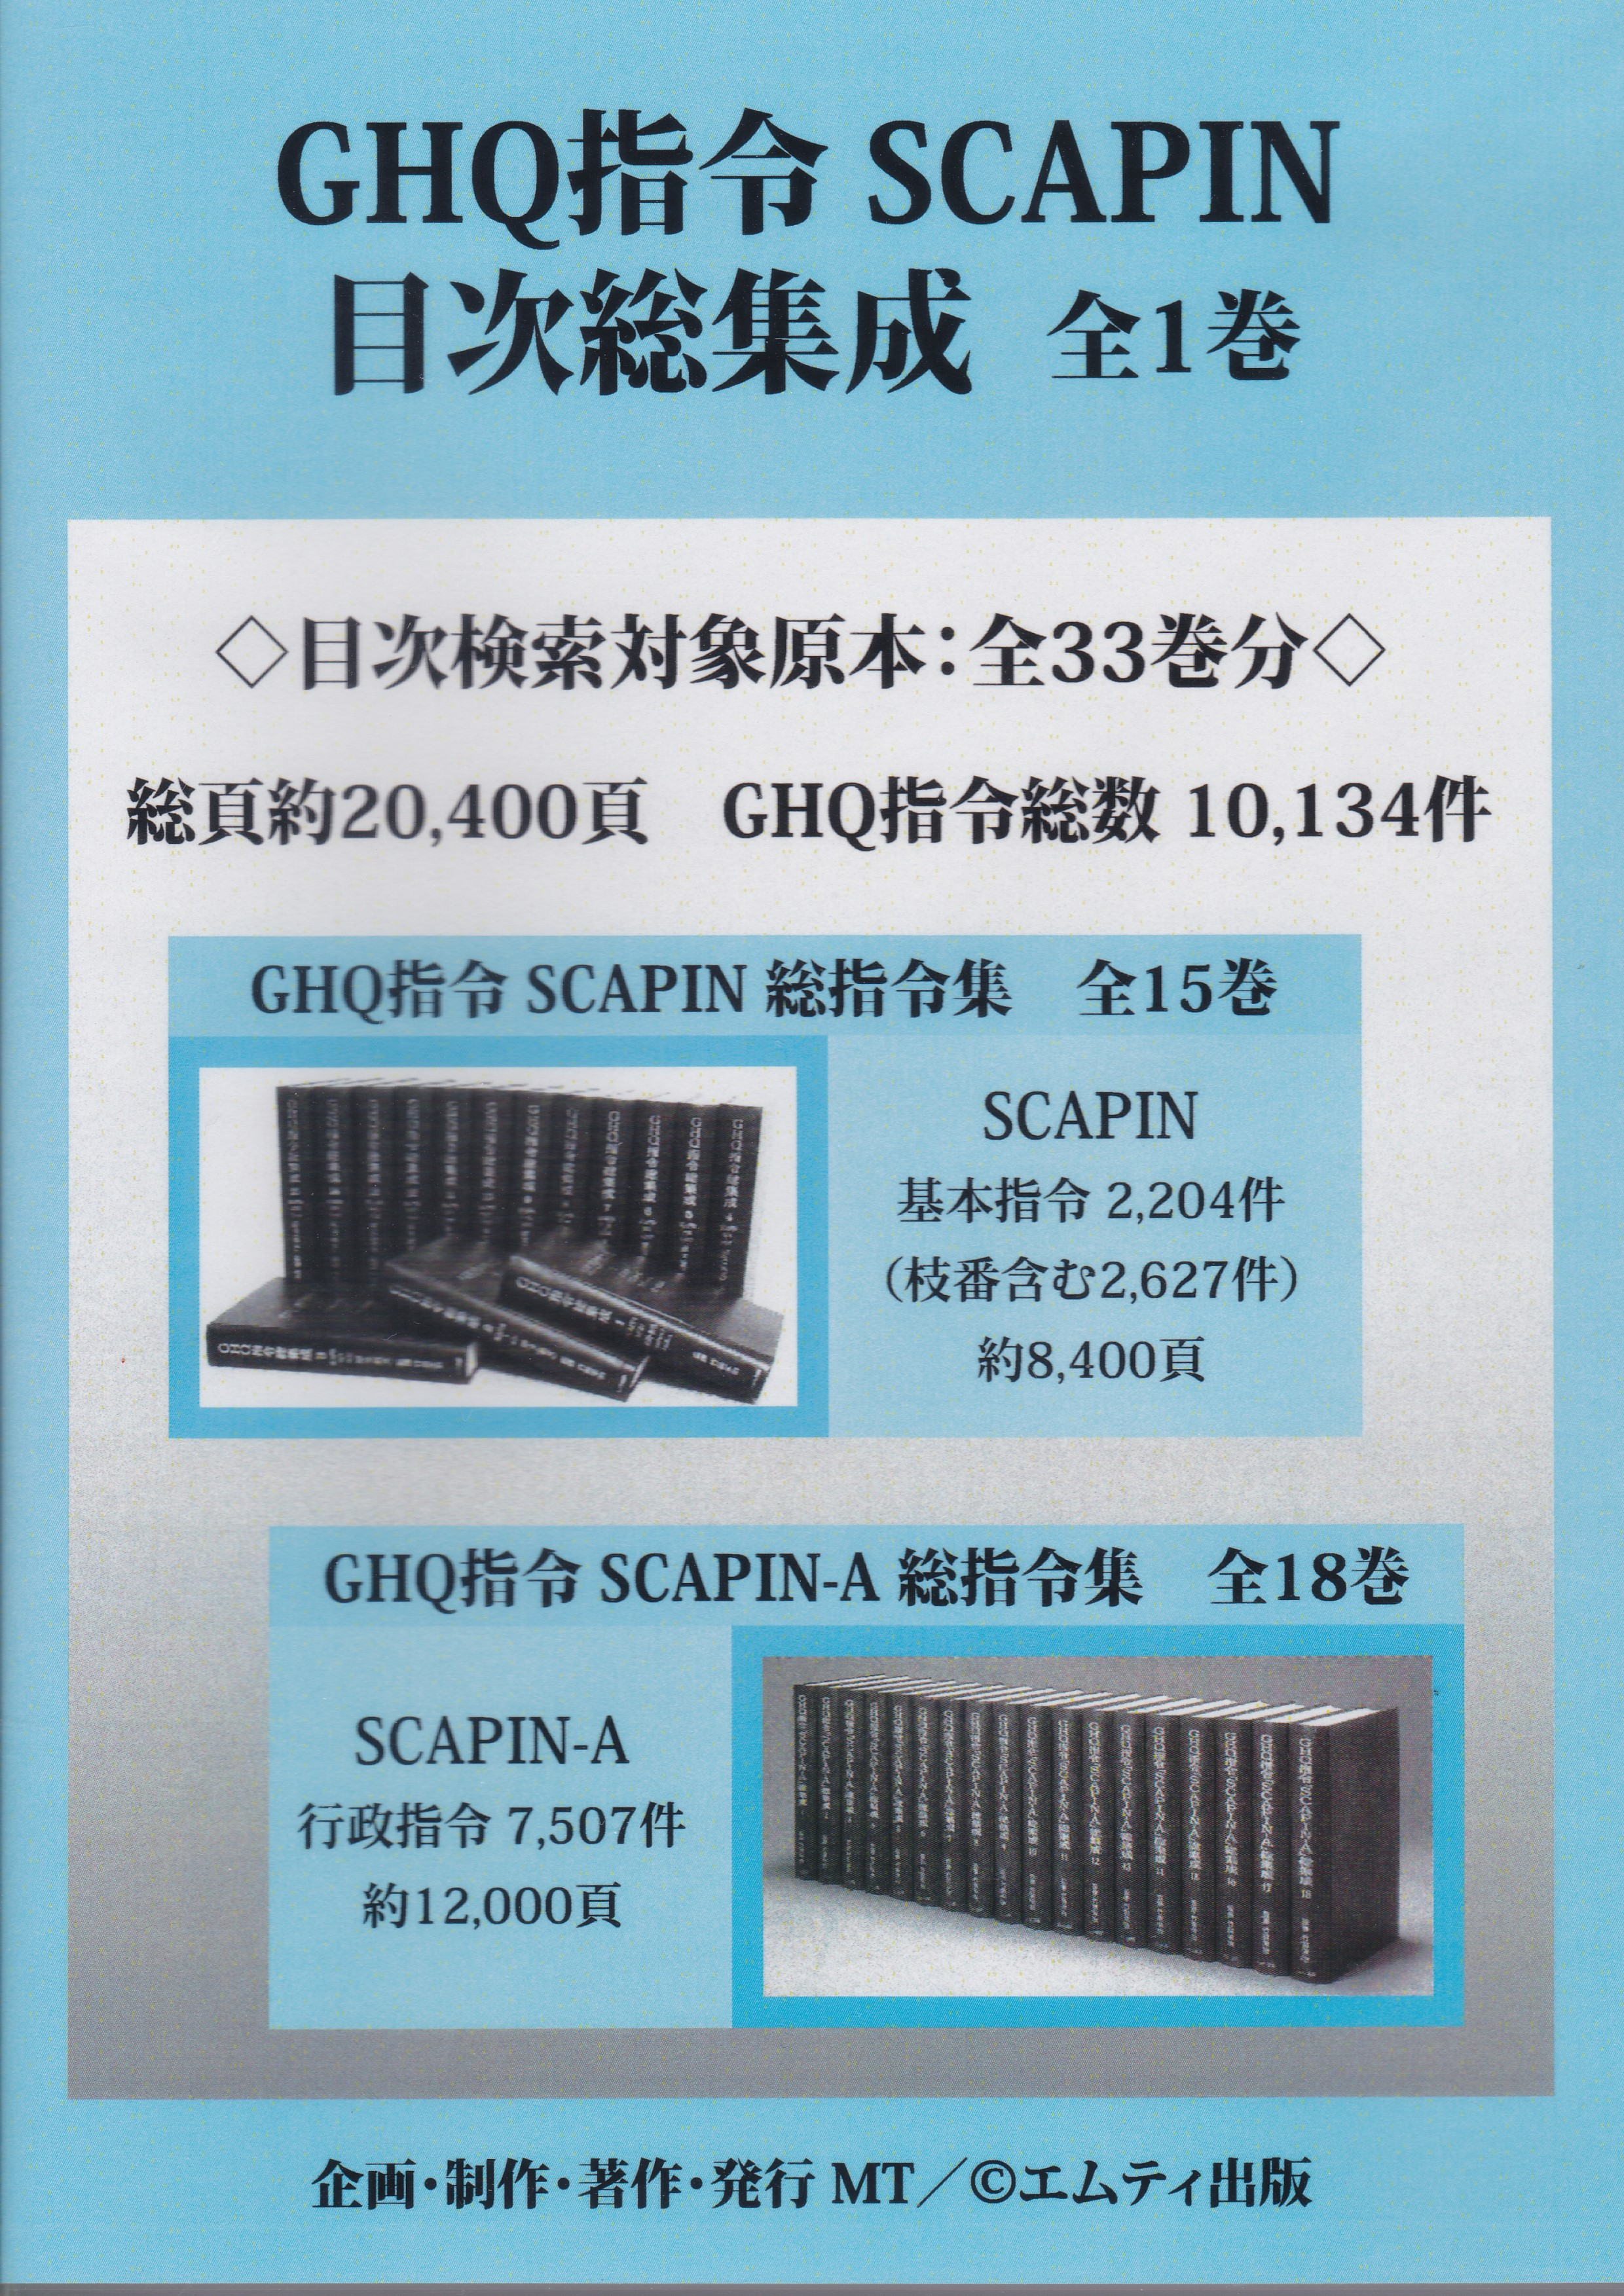 SCAPIN目次DVD